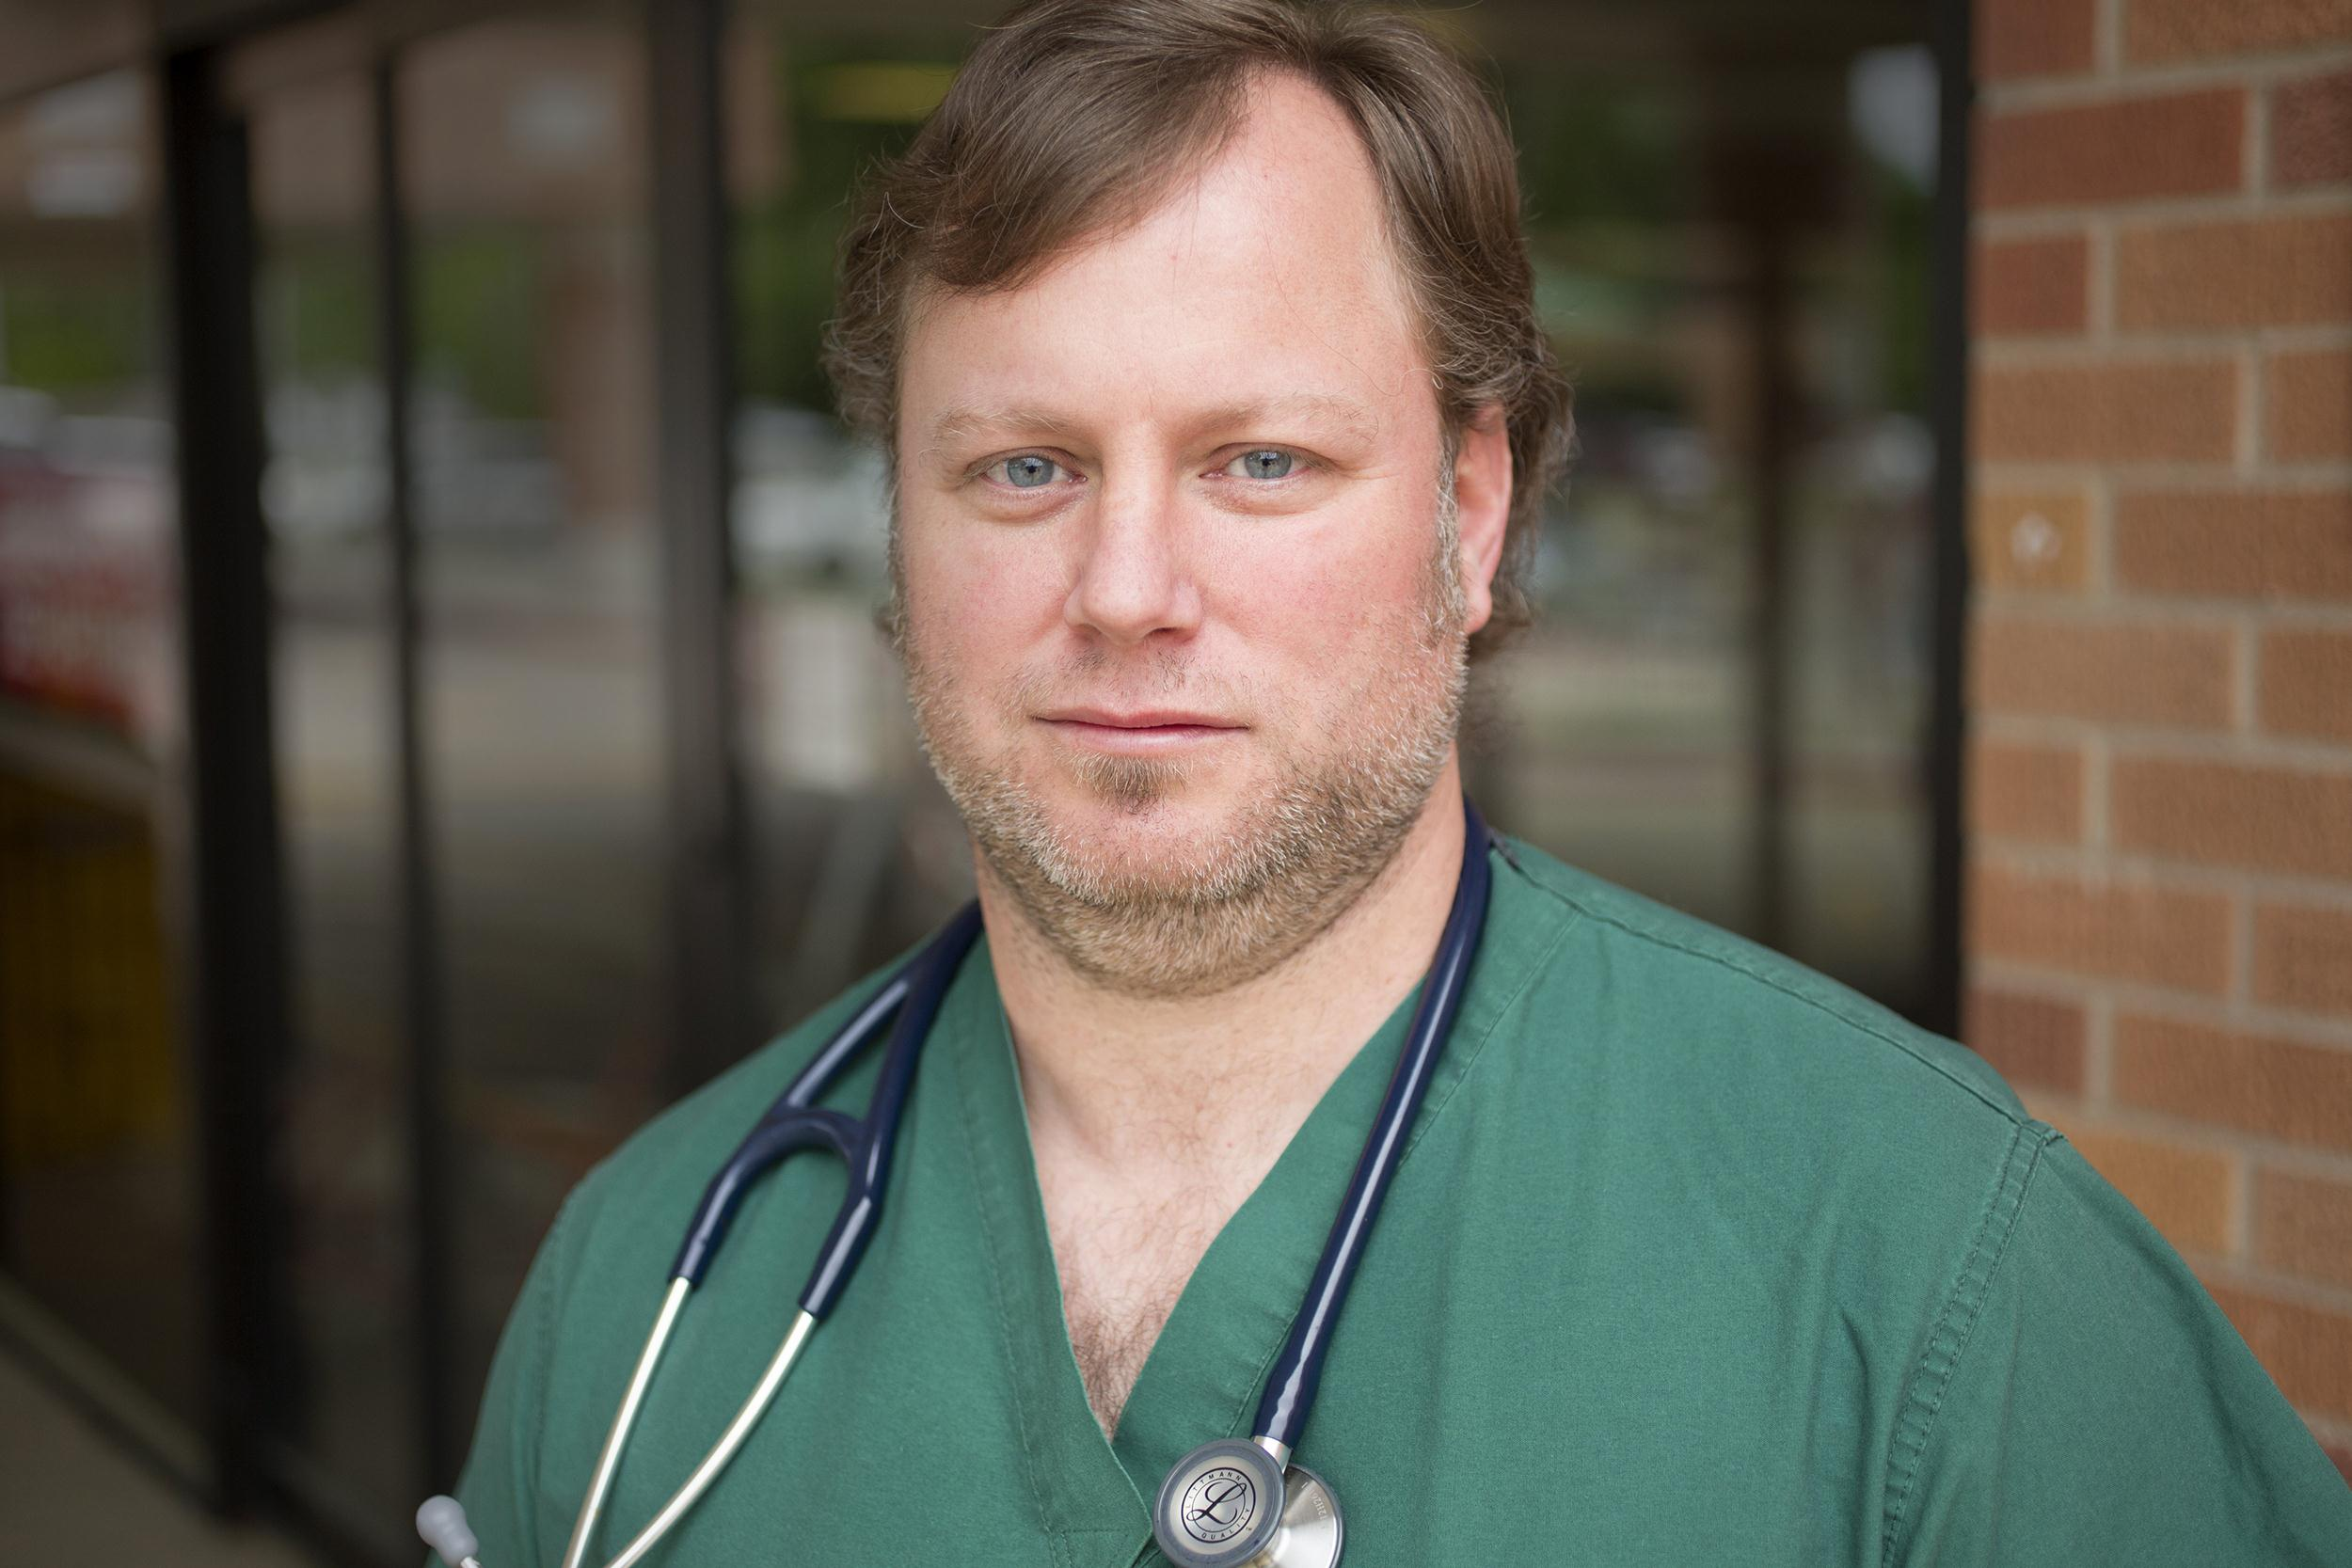 Image: Jason Skinner, an emergency room doctor at Conway Regional Medical Center, worked on Sunday night when a tornado swept through the regio